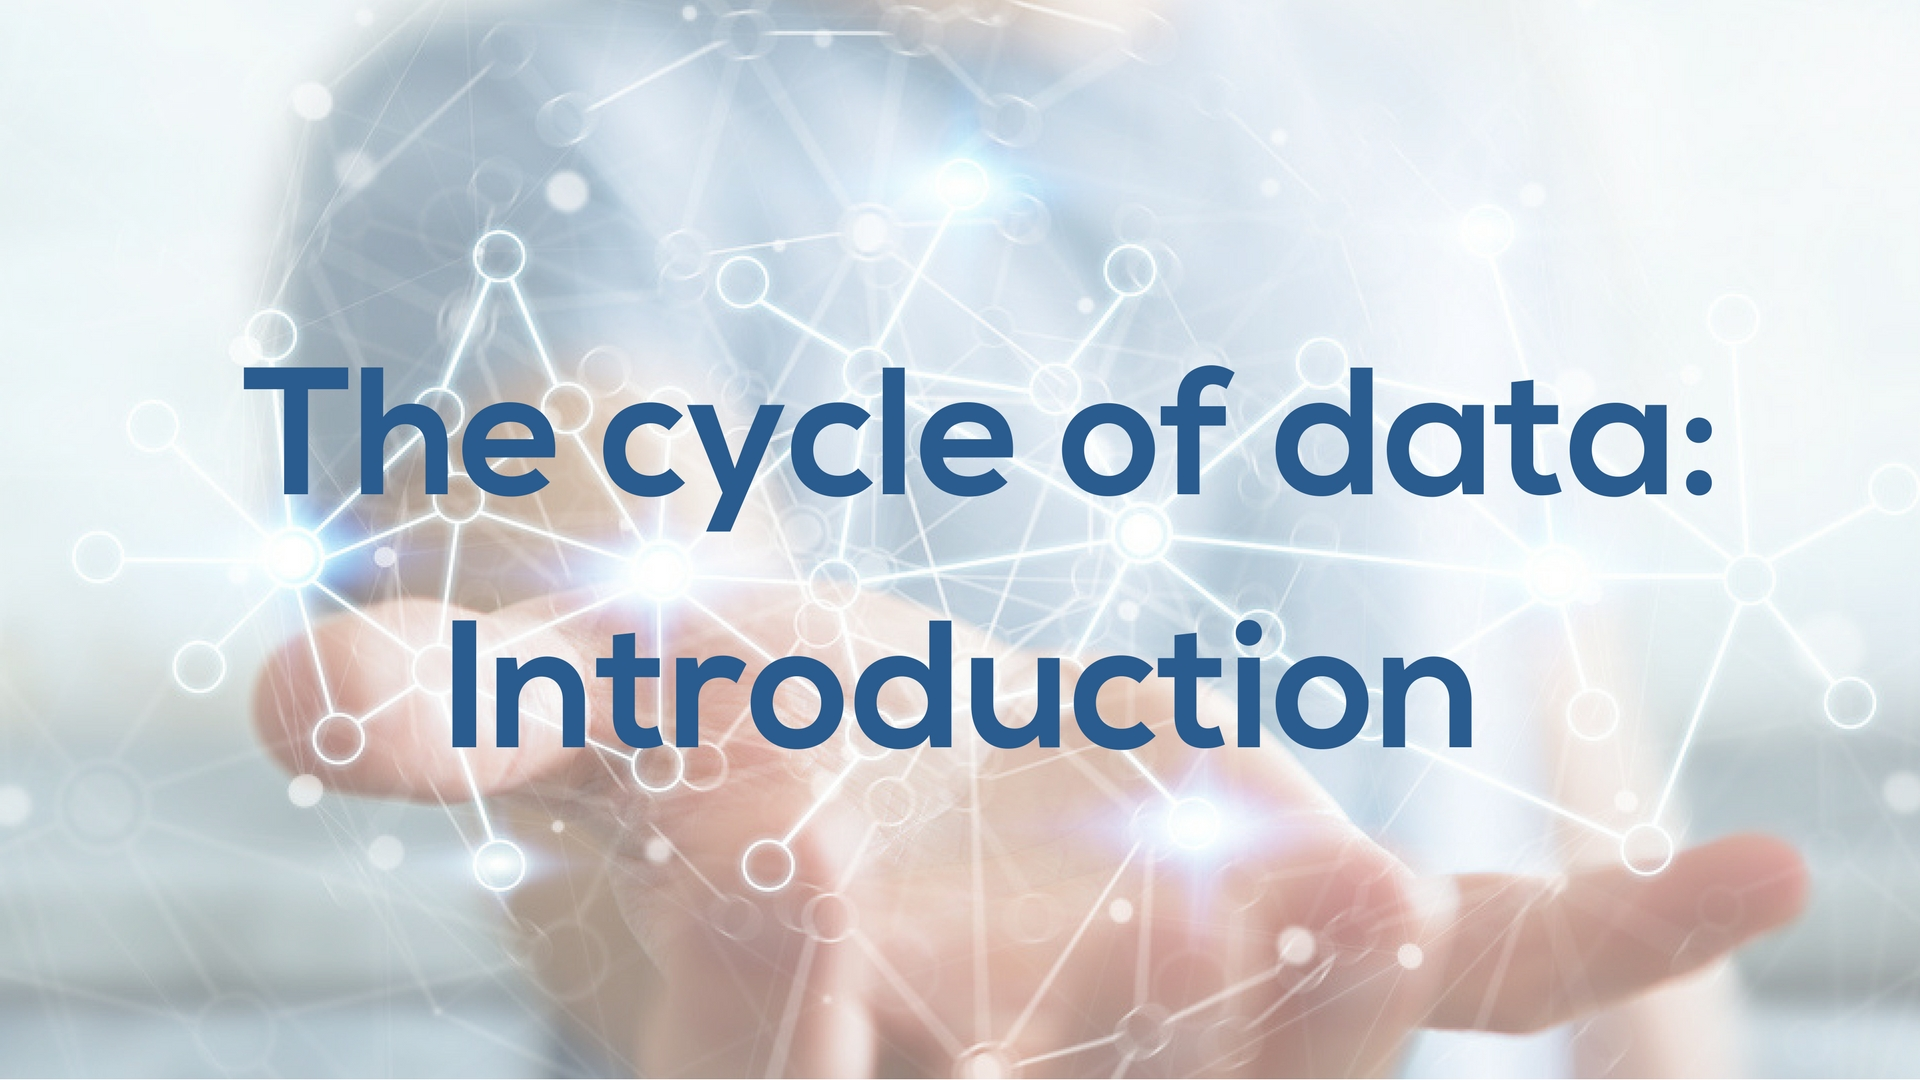 New study! The cycle of data: Introduction